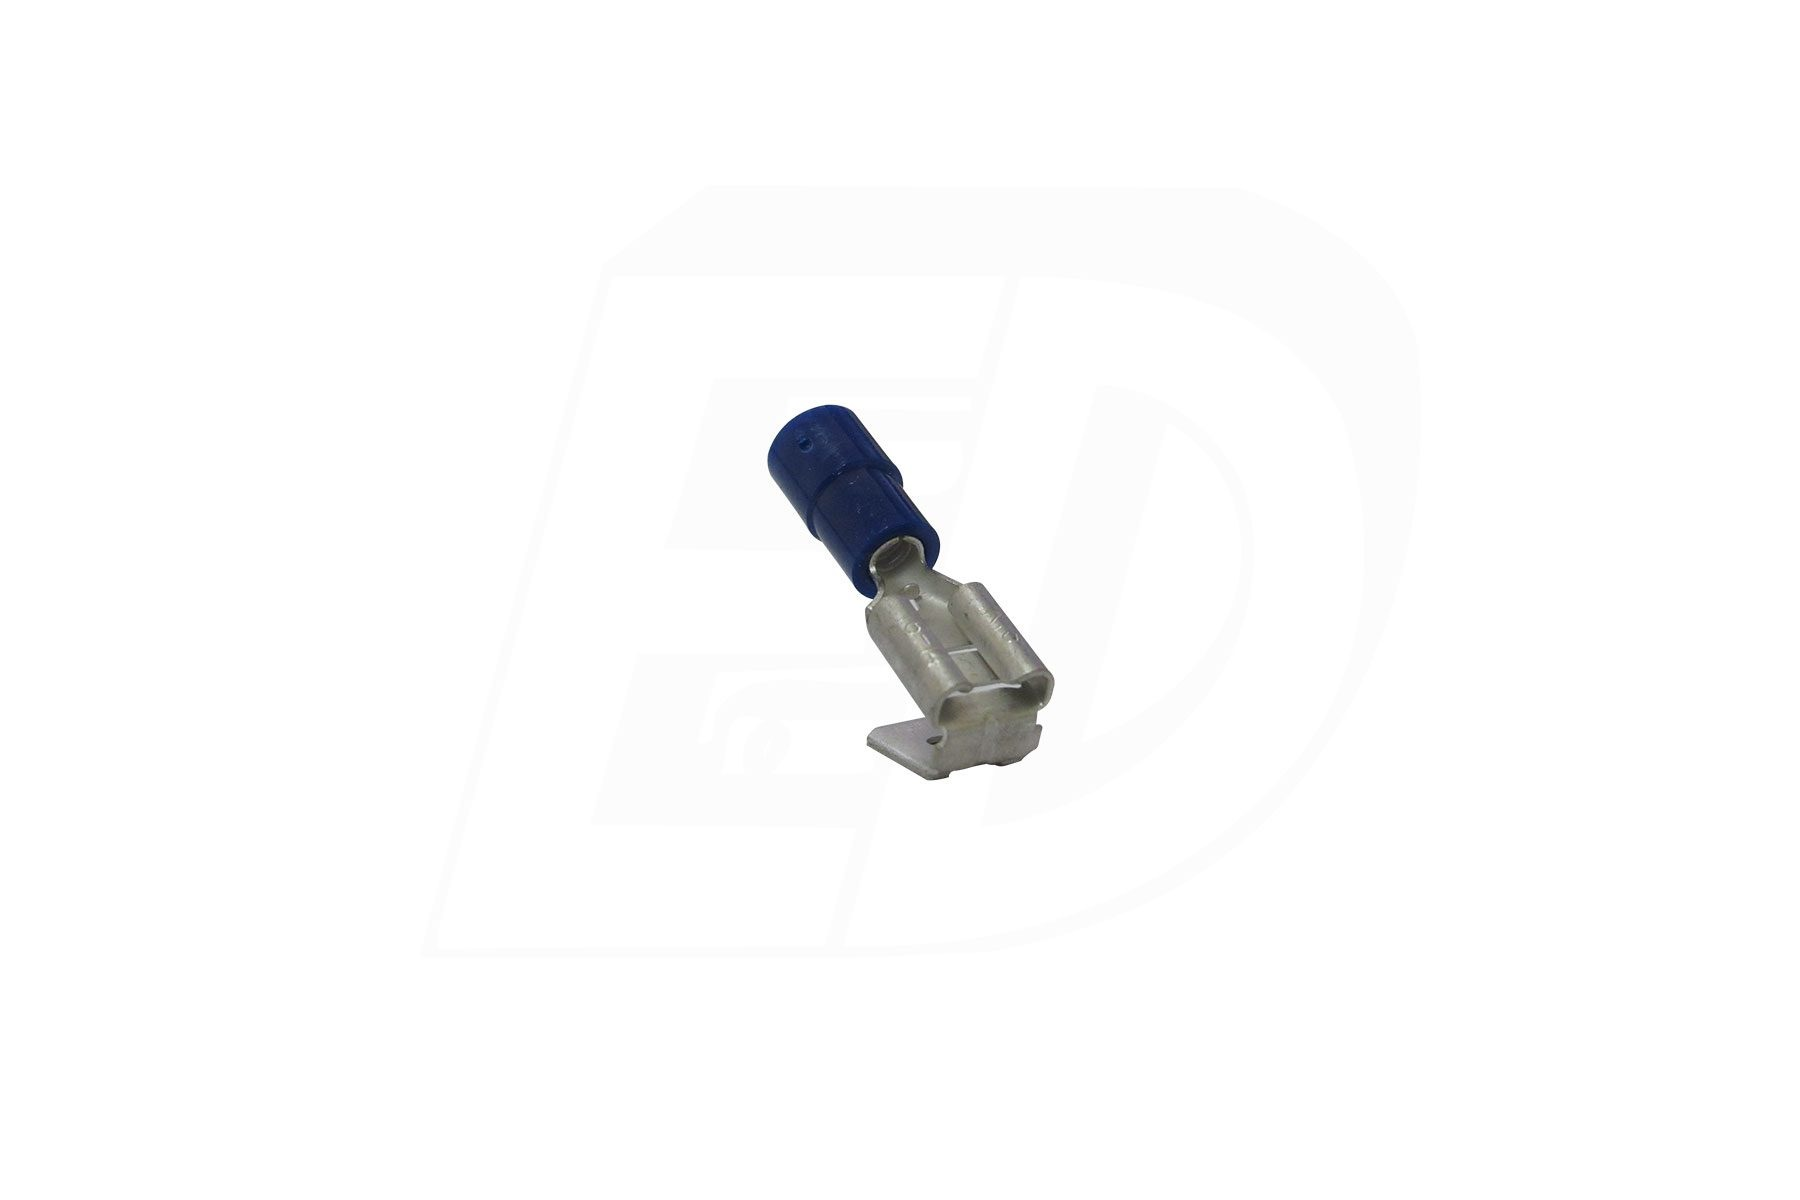 Butted Seam Vinyl Insulated piggyback quick-disconnect terminals 16 - 14 AWG